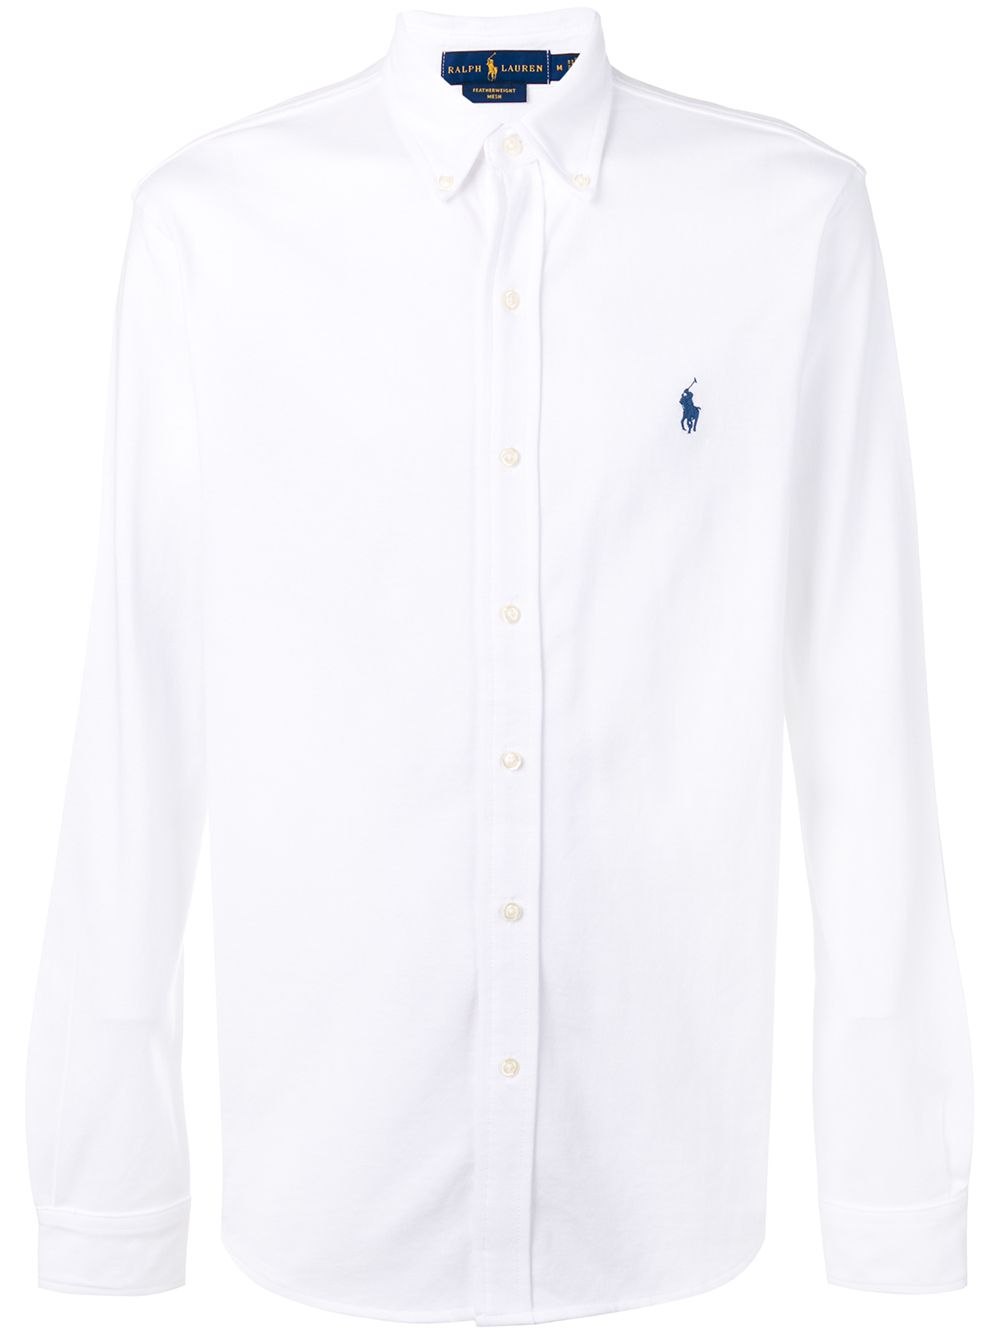 Polo Ralph Lauren button down logo shirt - White von Polo Ralph Lauren